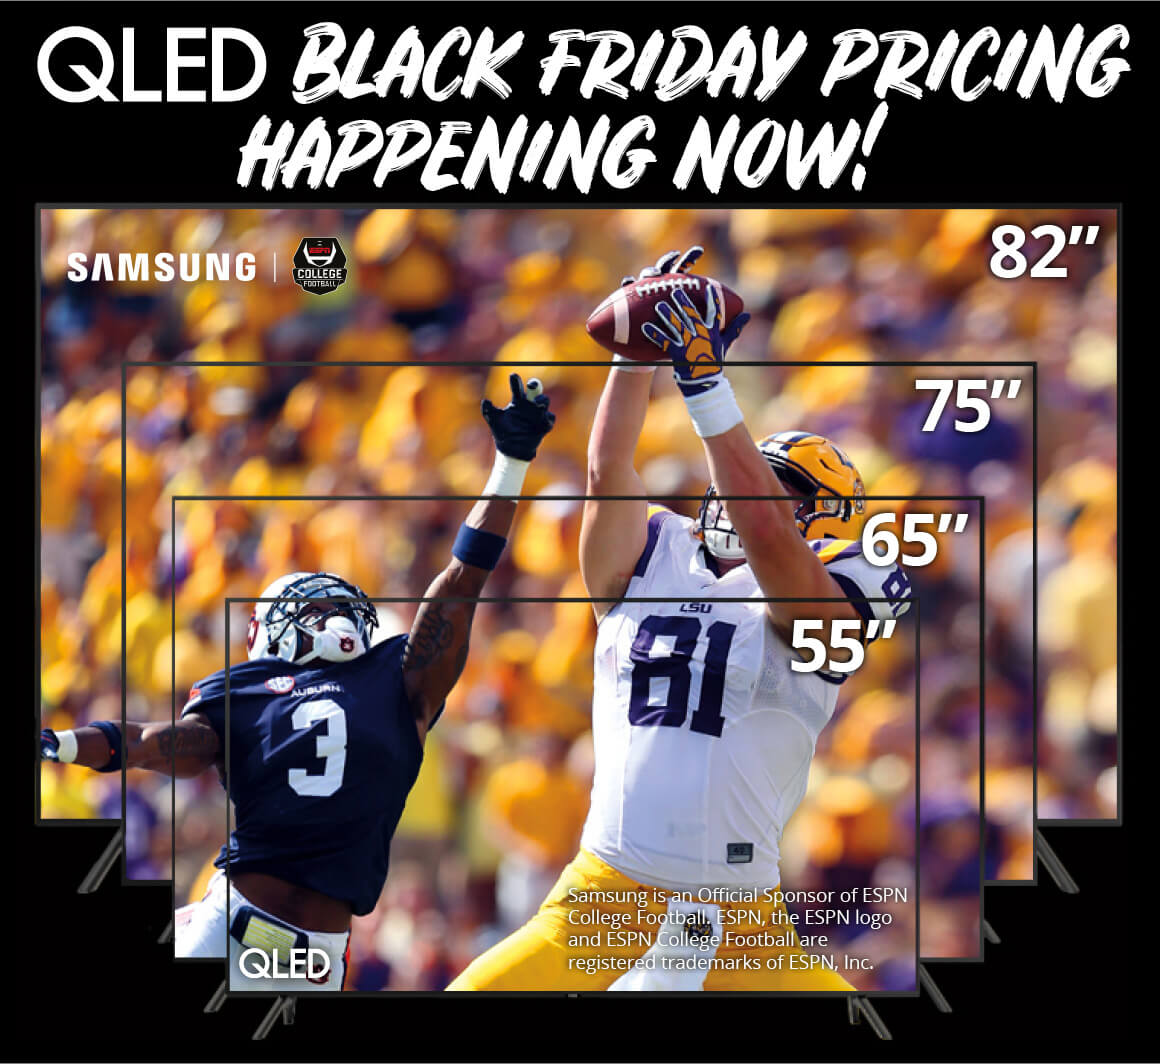 QLED Black Friday Pricing Happening Now!